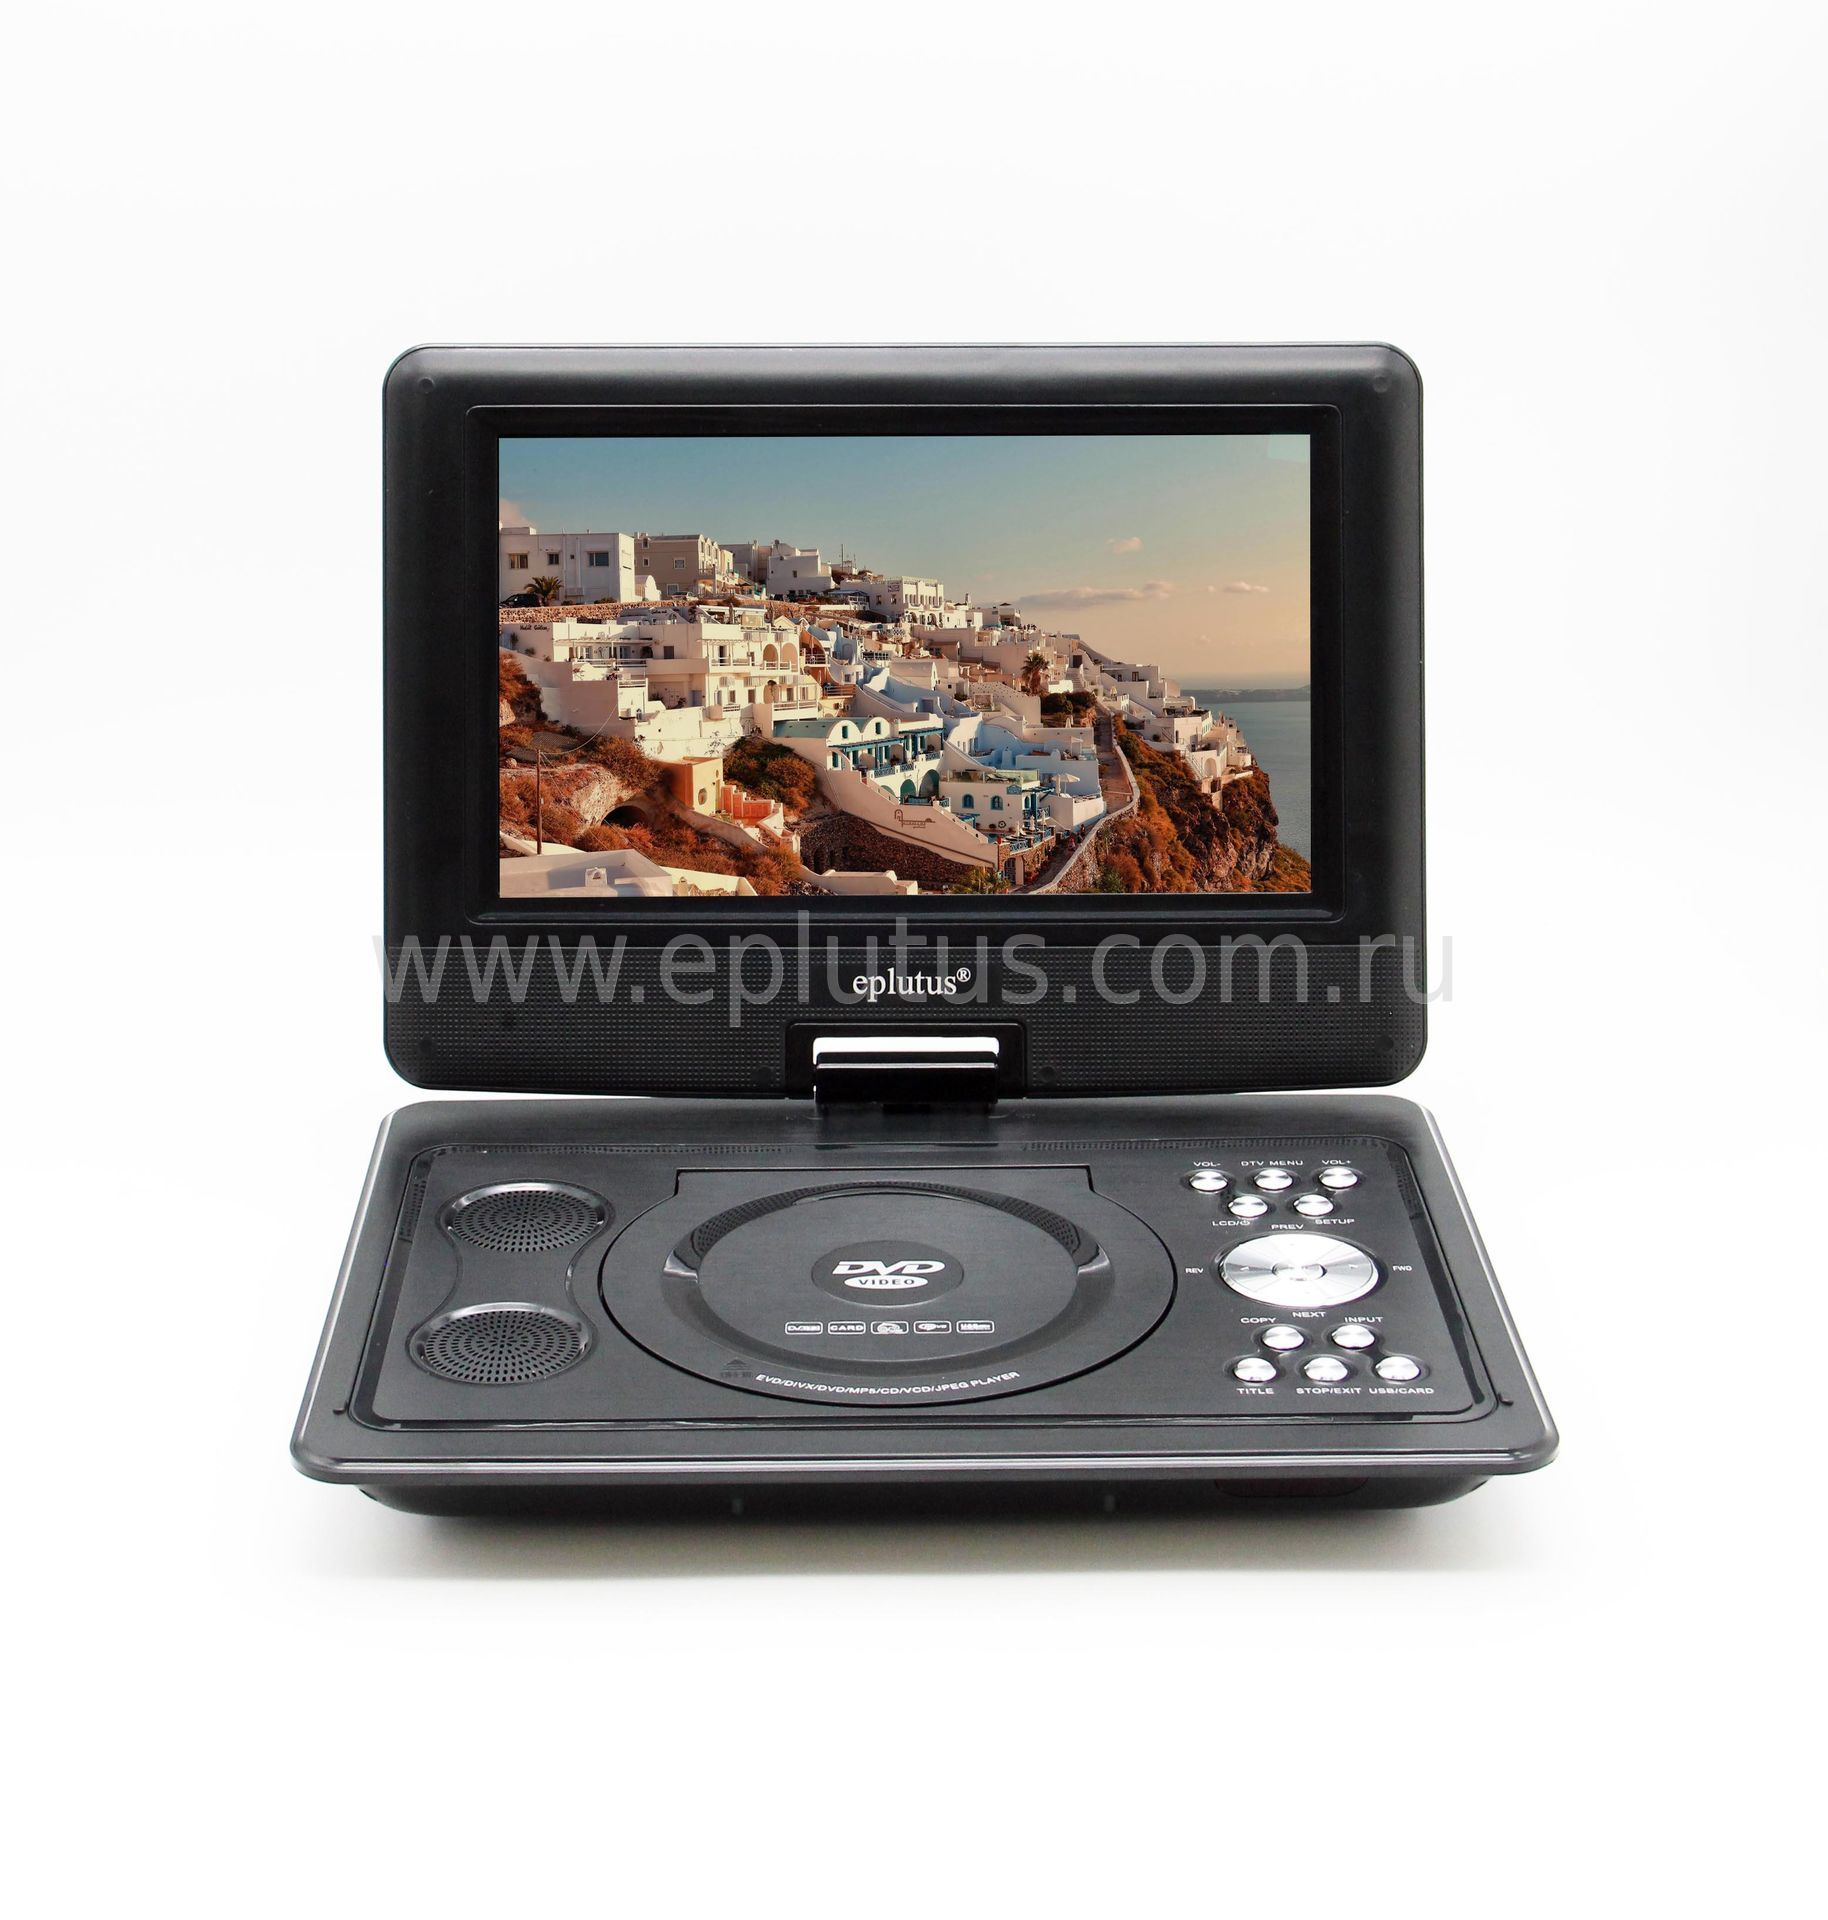 Eplutus EP-1030T автомобильный dvd плеер lg 2 din mazda 5 dvd gps tv 3g wifi bt usb sd 8